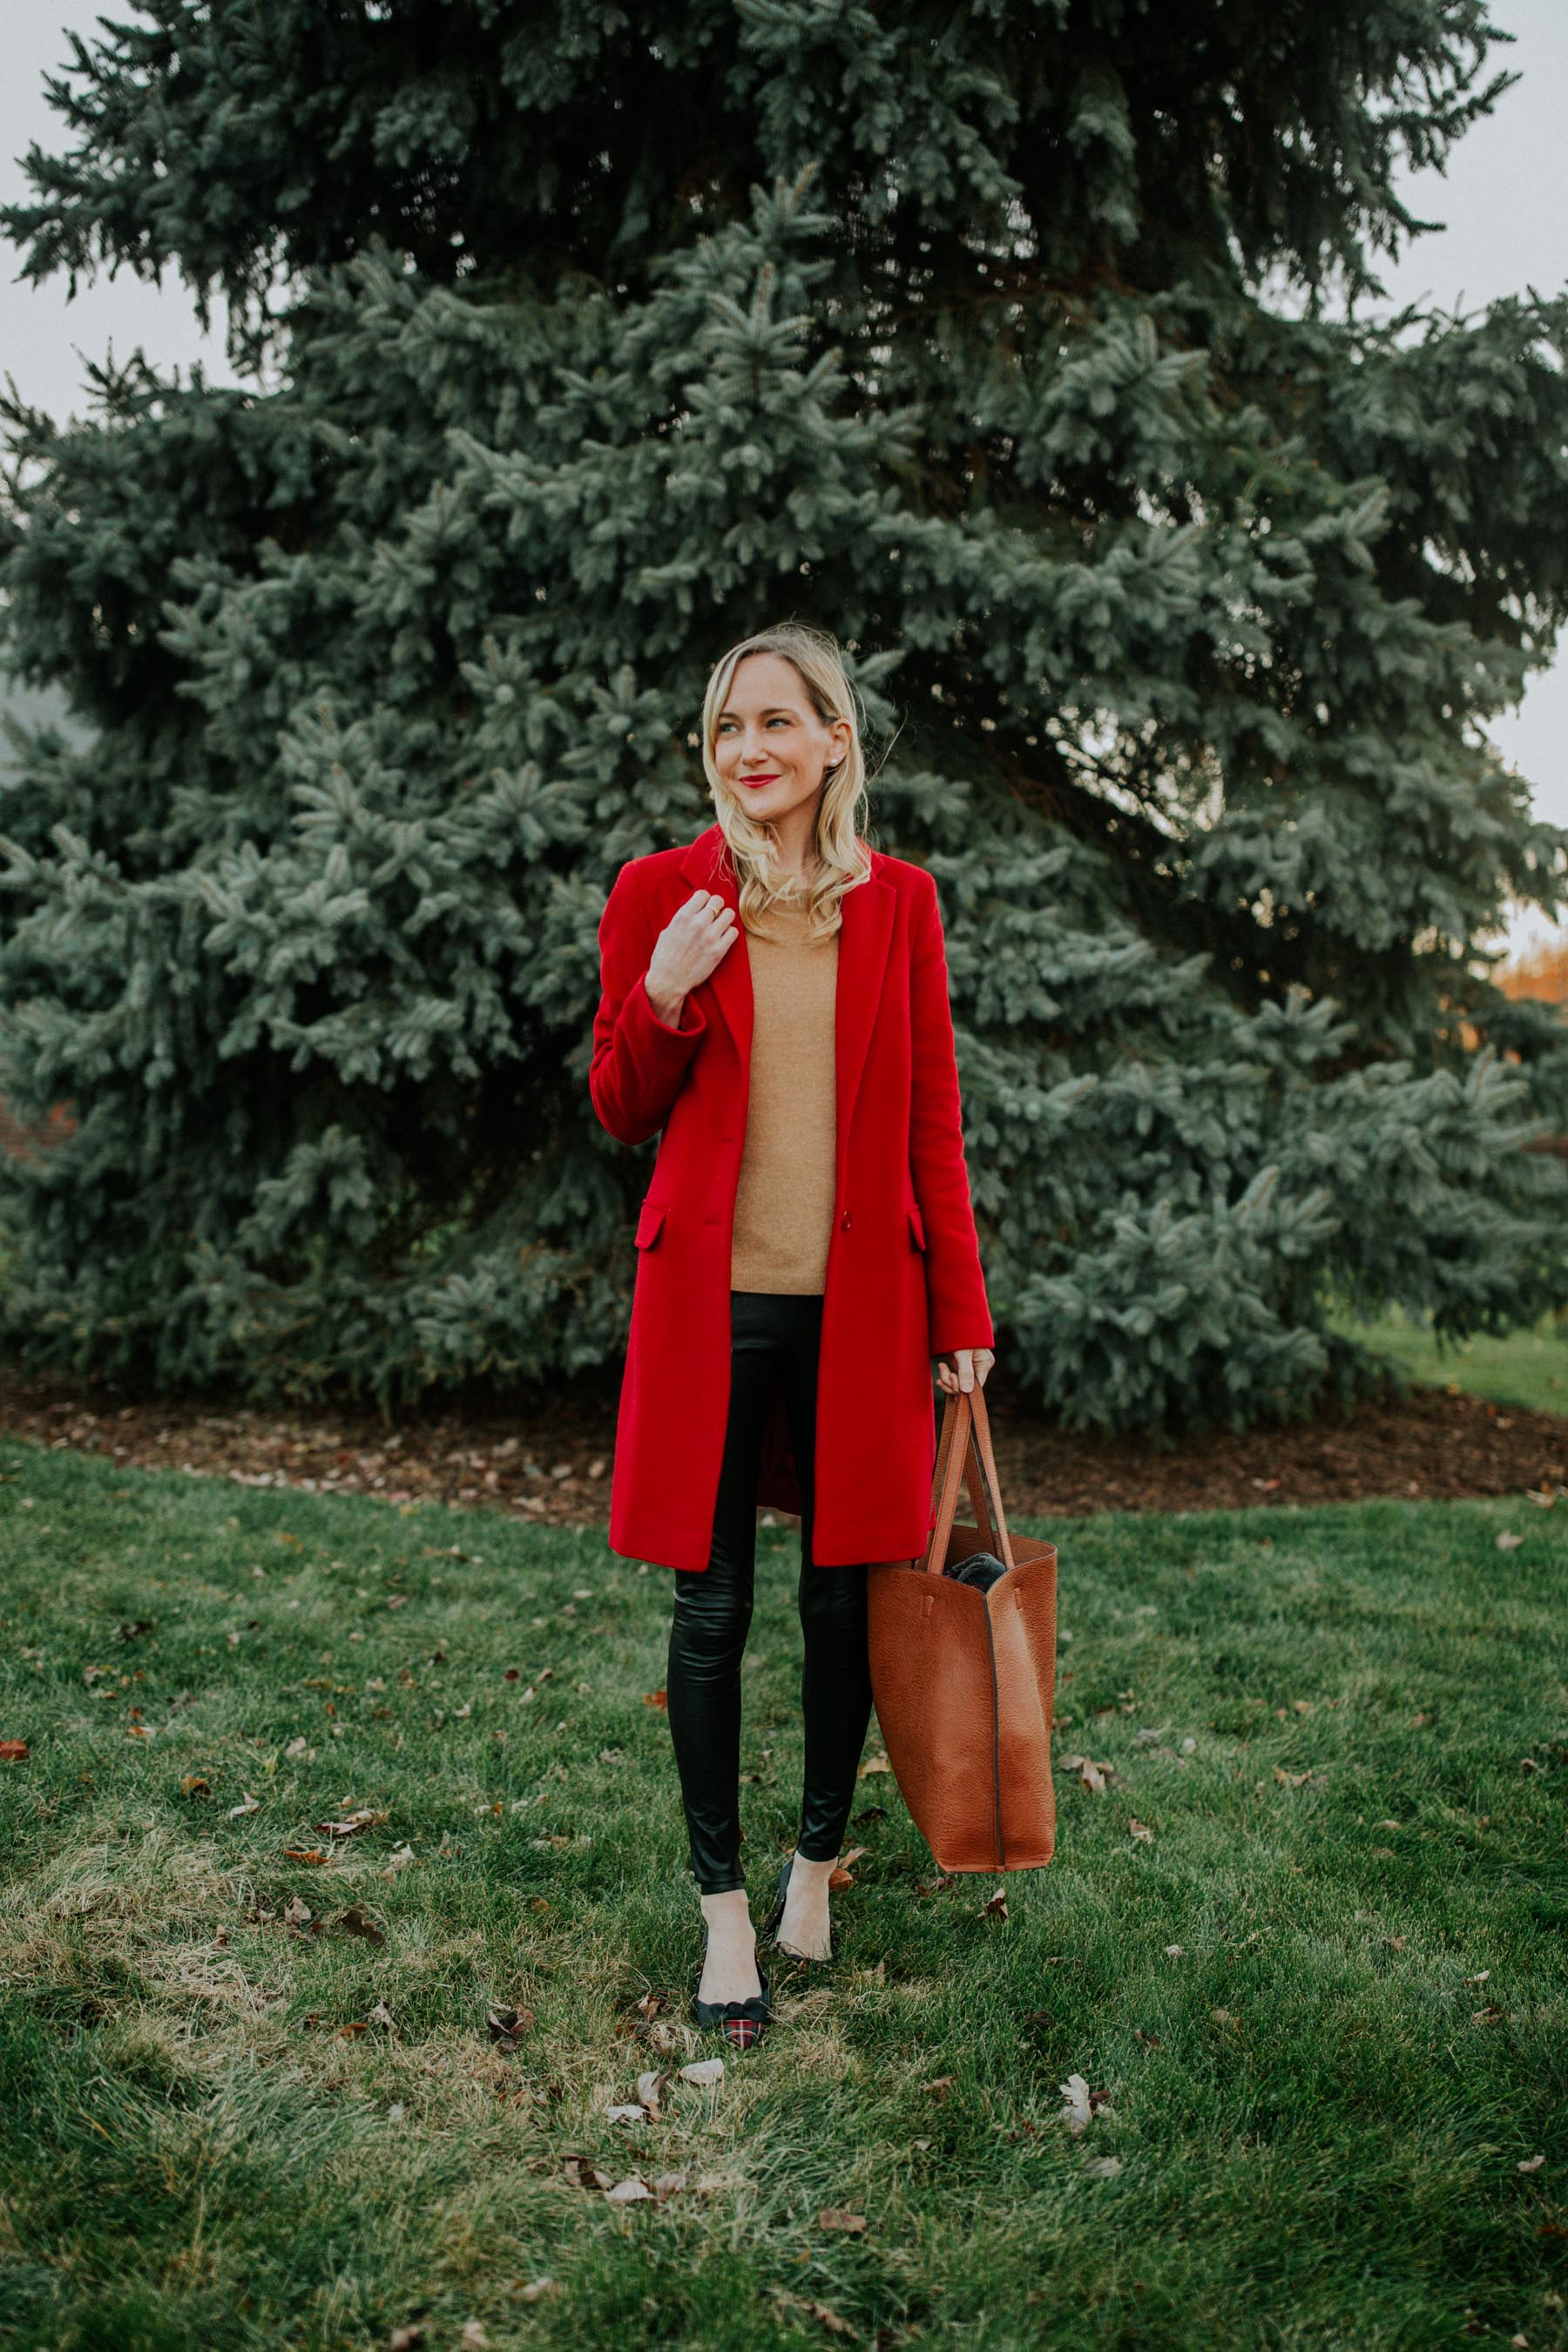 Red winter coat: Casual Preppy Christmas Outfit